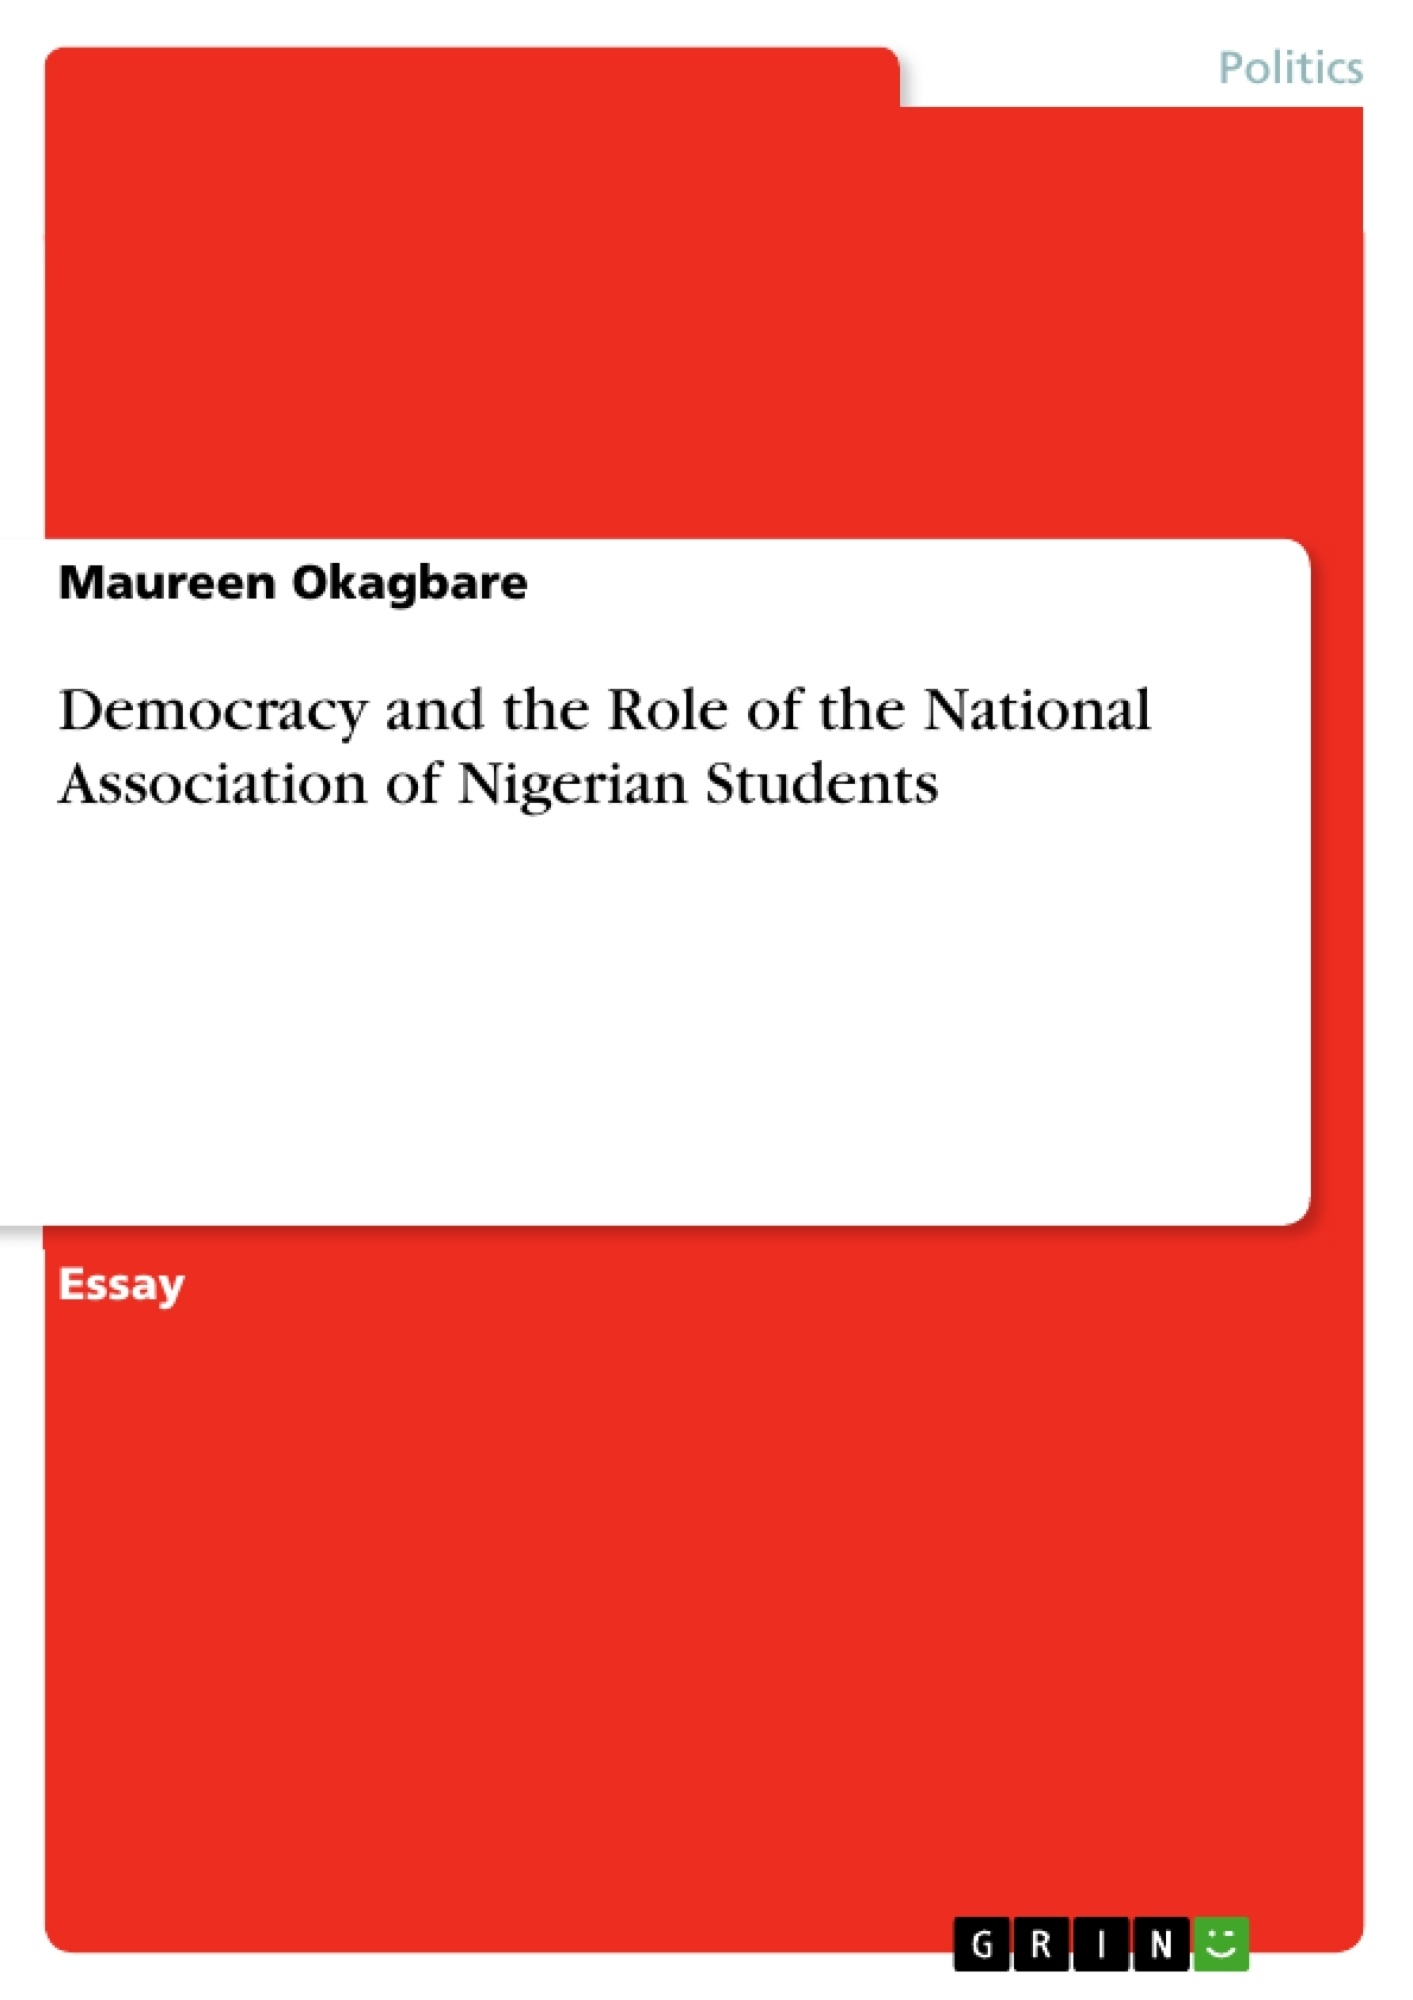 Title: Democracy and the Role of the National Association of Nigerian Students